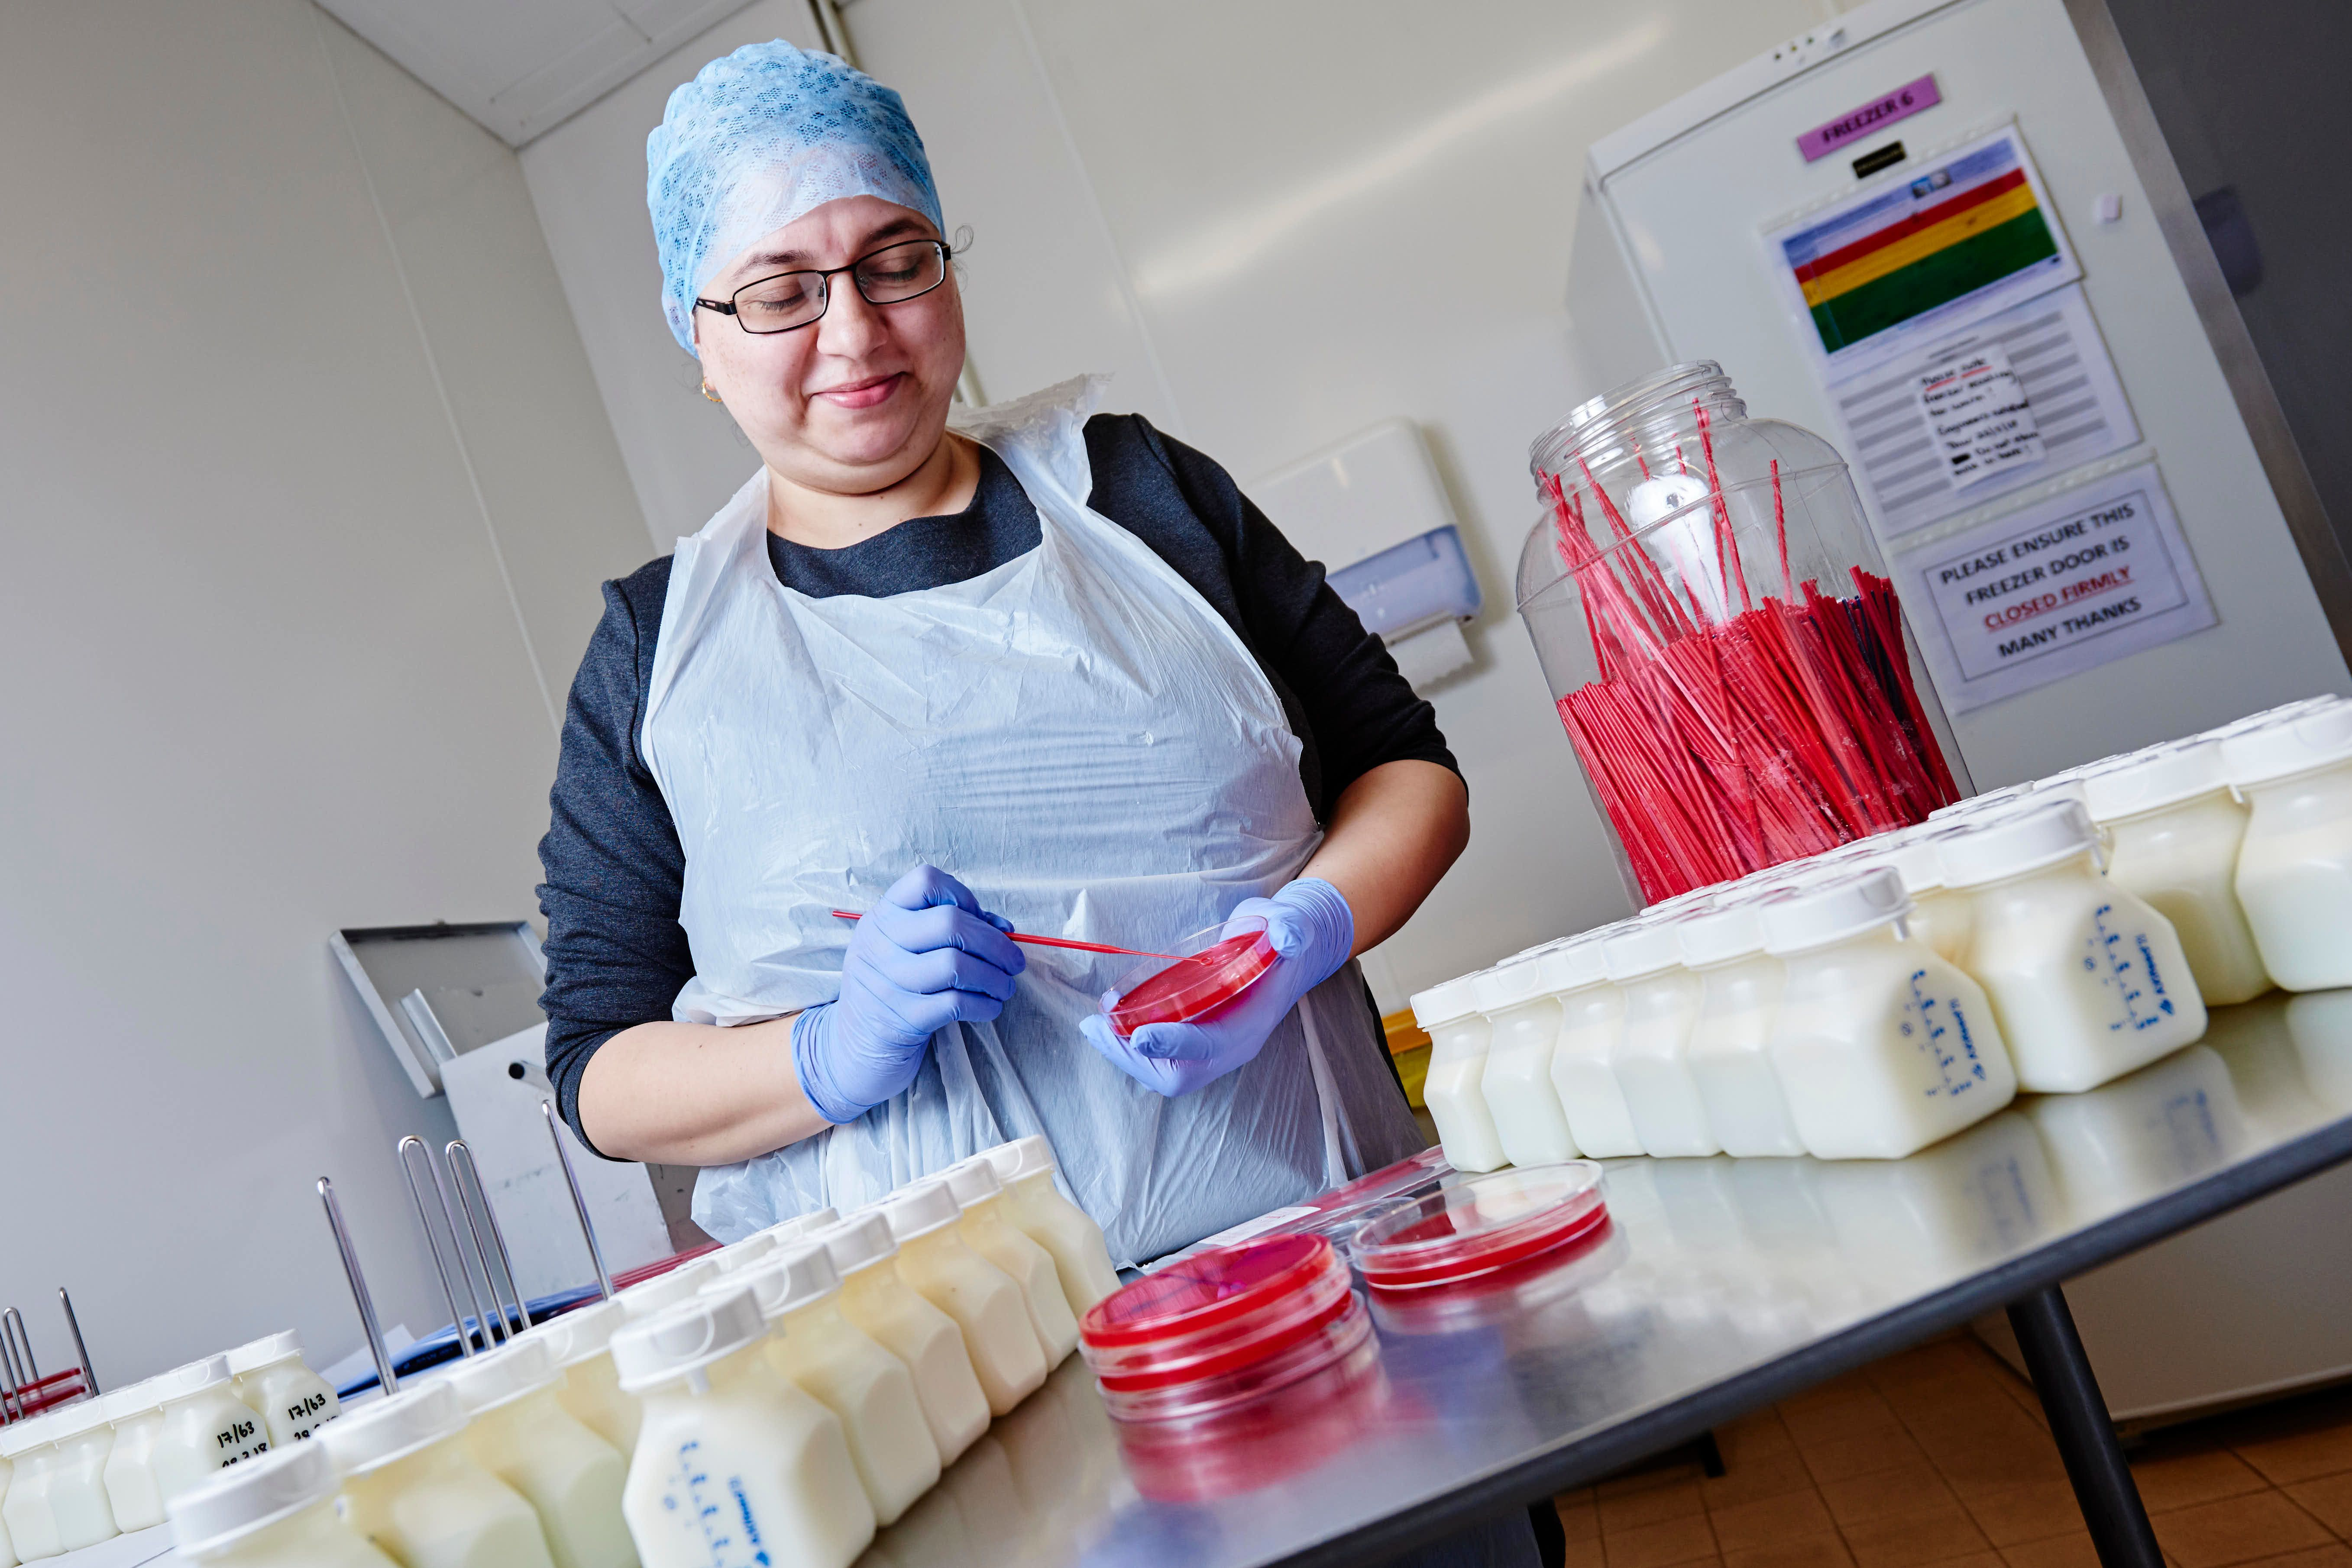 Could You Donate Your Breast Milk To Sick and Premature Babies? Here's